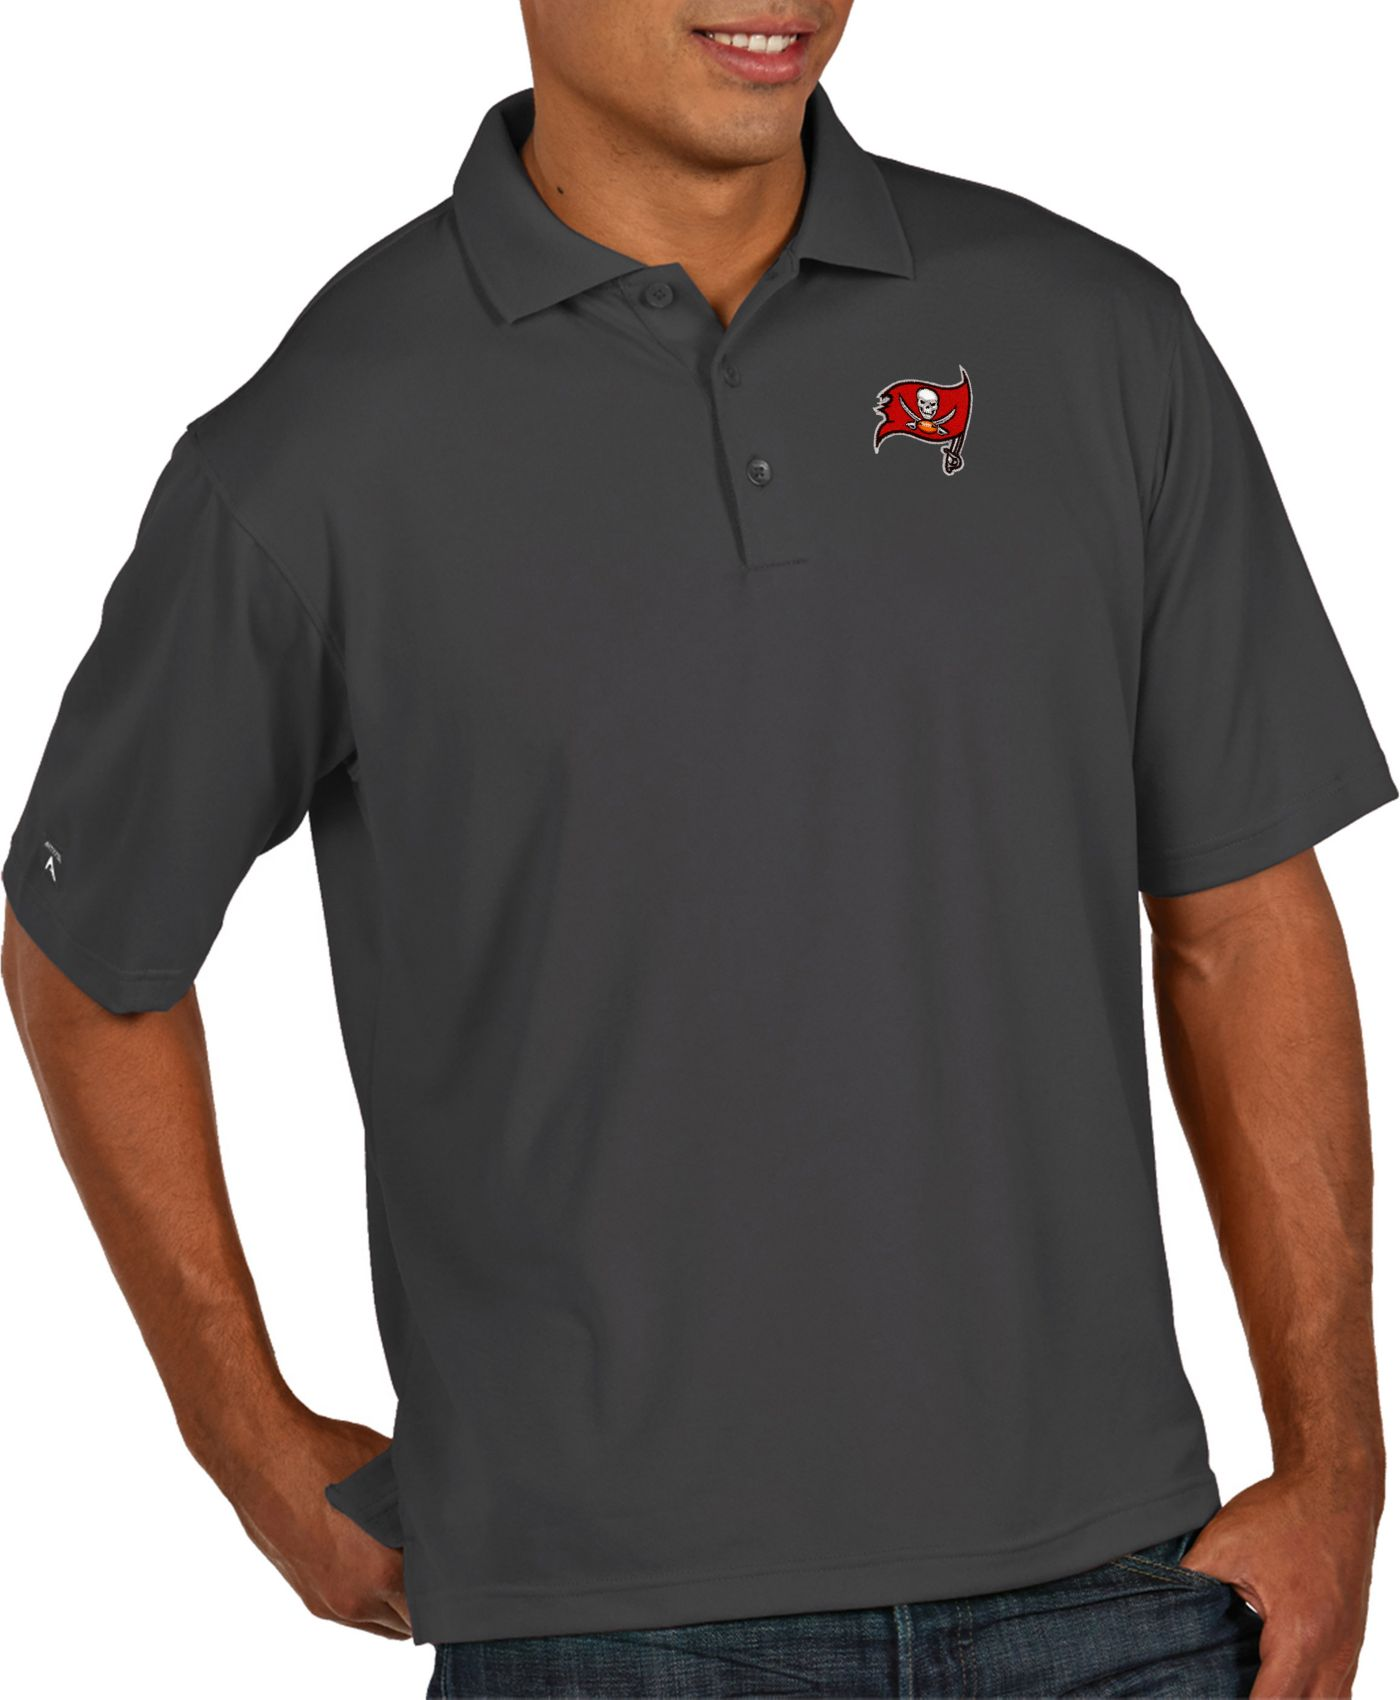 Antigua Men's Tampa Bay Buccaneers Pique Xtra-Lite Performance Smoke Polo